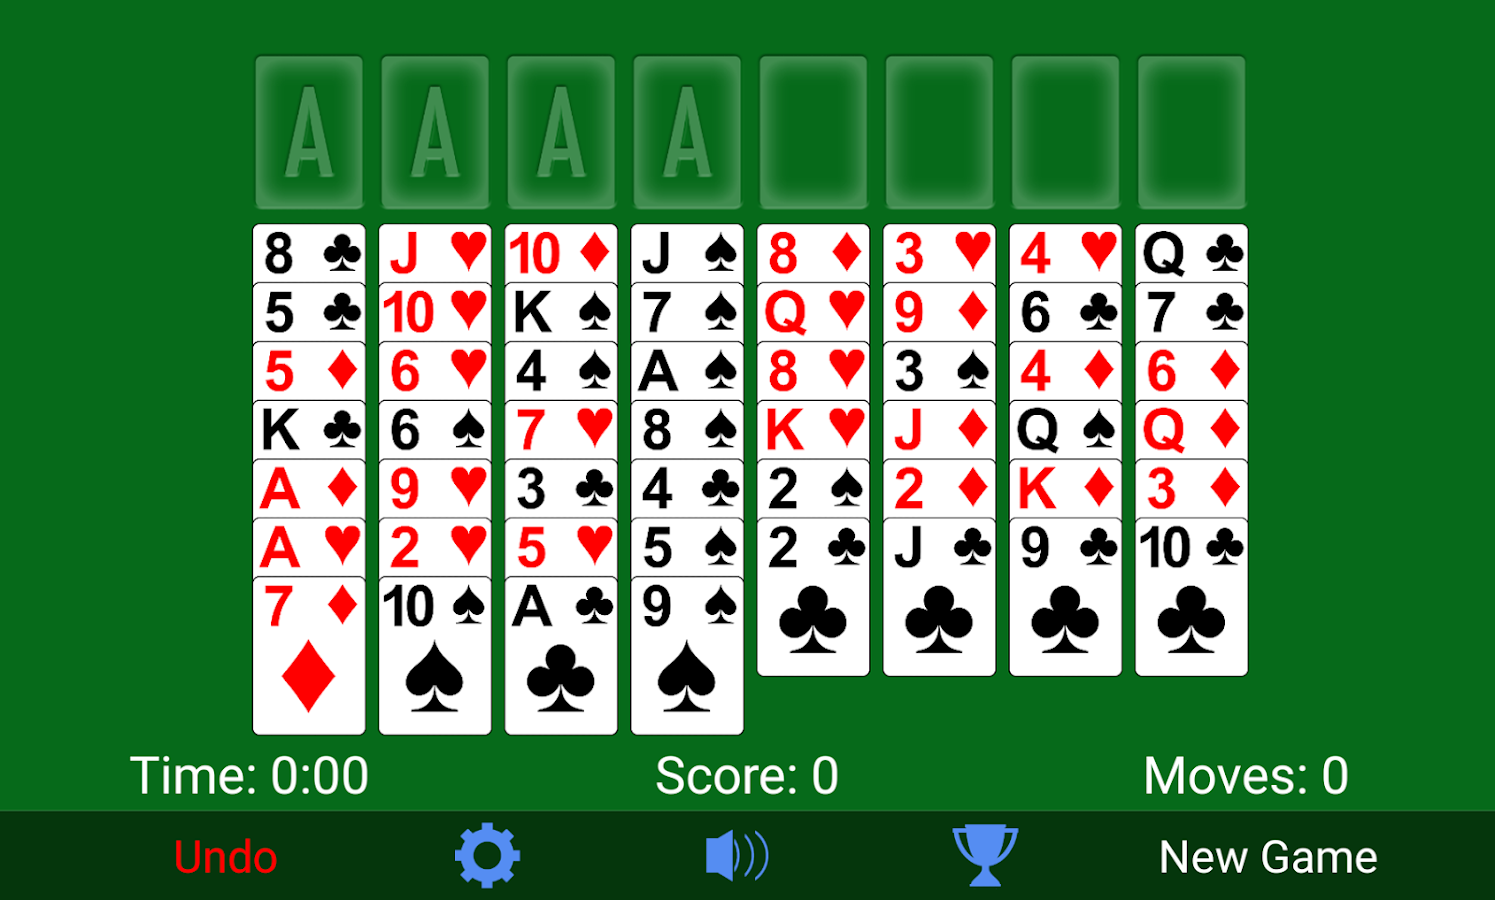 freecell.com solitaire